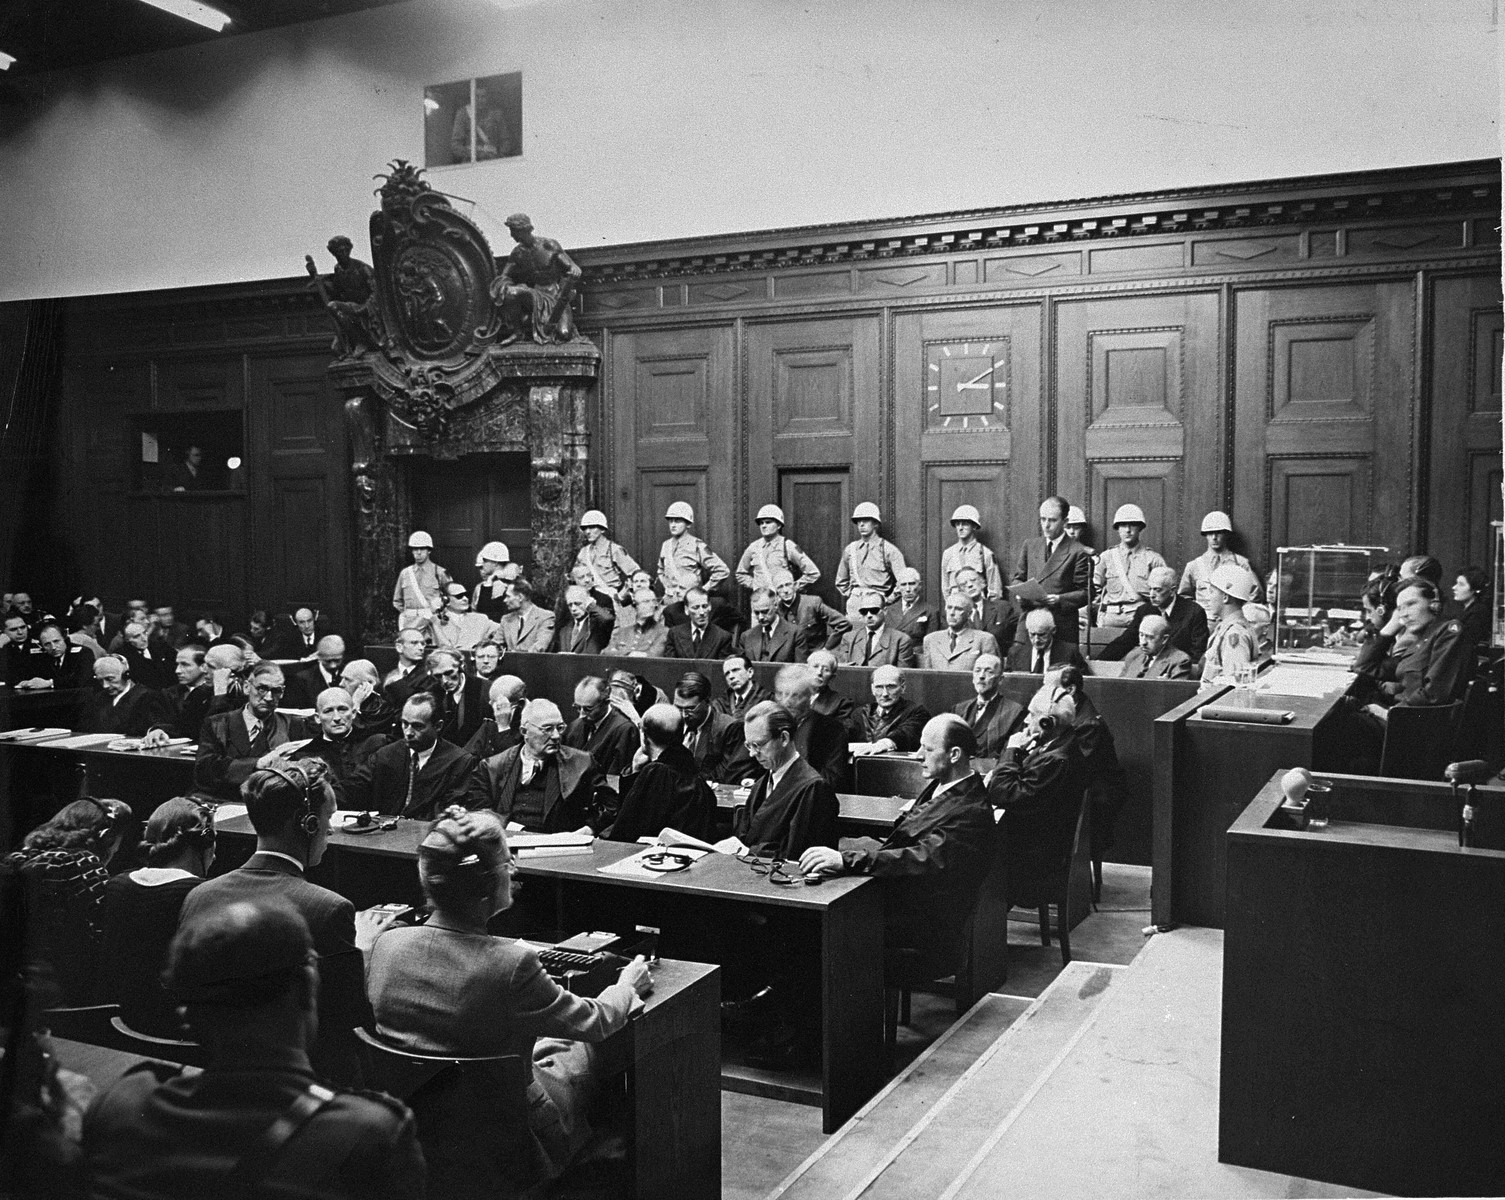 The defendants and their lawyers at the International Military Tribunal trial of war criminals at Nuremberg.  Defendant Albert Speer (standing at right) delivers a statement in the dock.